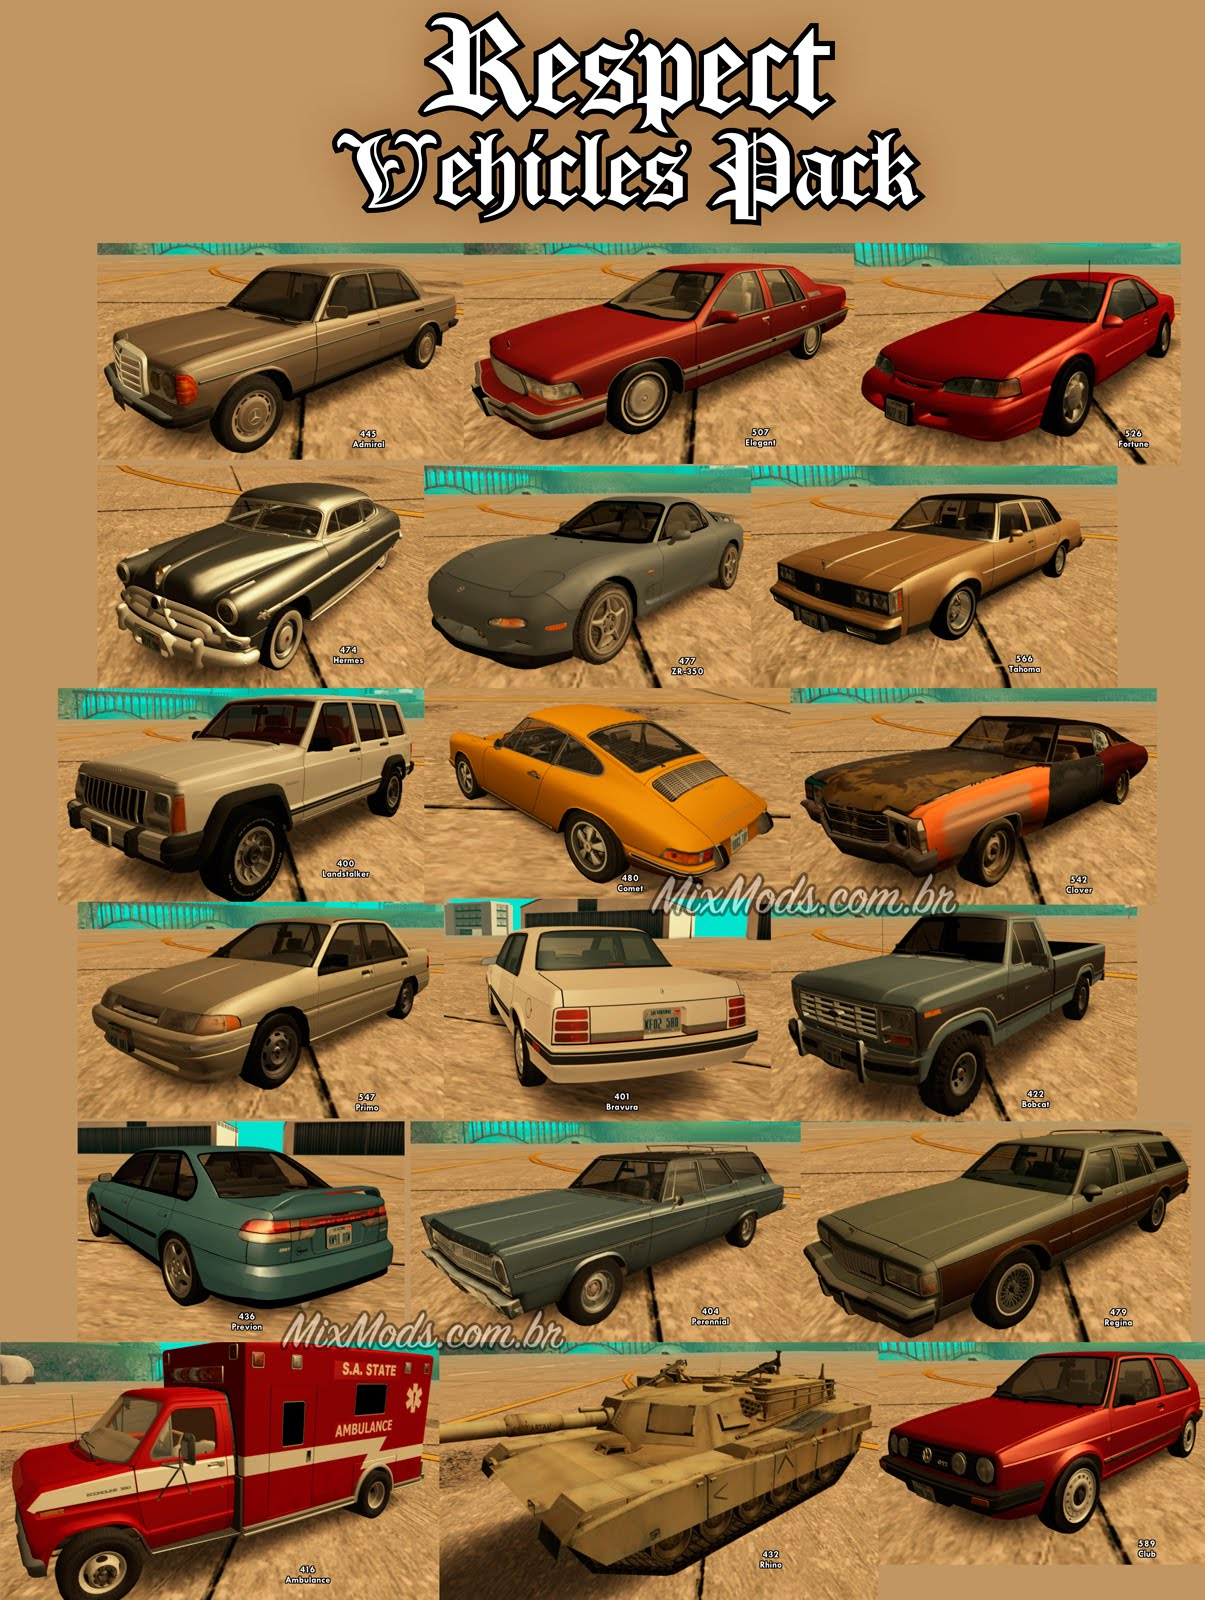 RESPECT Vehicles Pack (Working) - Página 10 Gta-san-andreas-mod-pack-real-cars-respect-vehicles-rvp